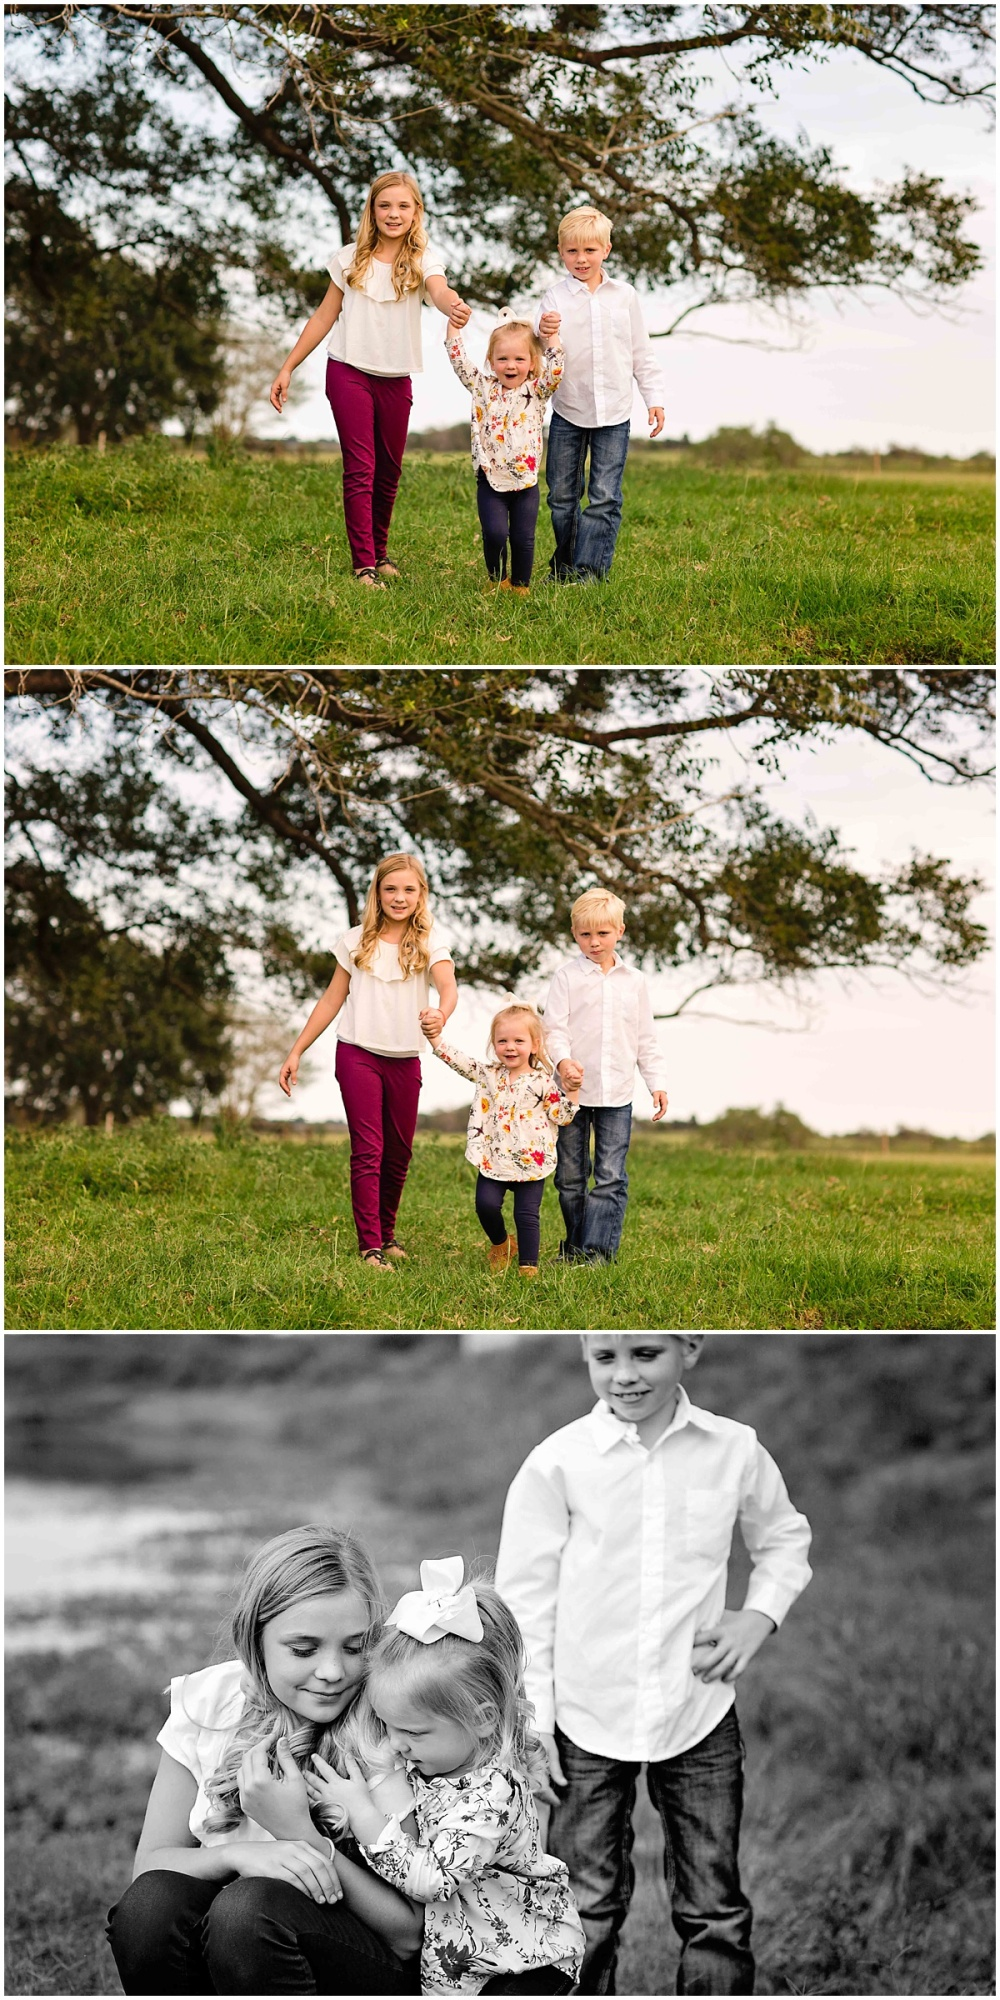 Family-Children-Maternity-Portraits-San-Antonio-Hill-Country-Texas-Carly-Barton-Photography_0030.jpg